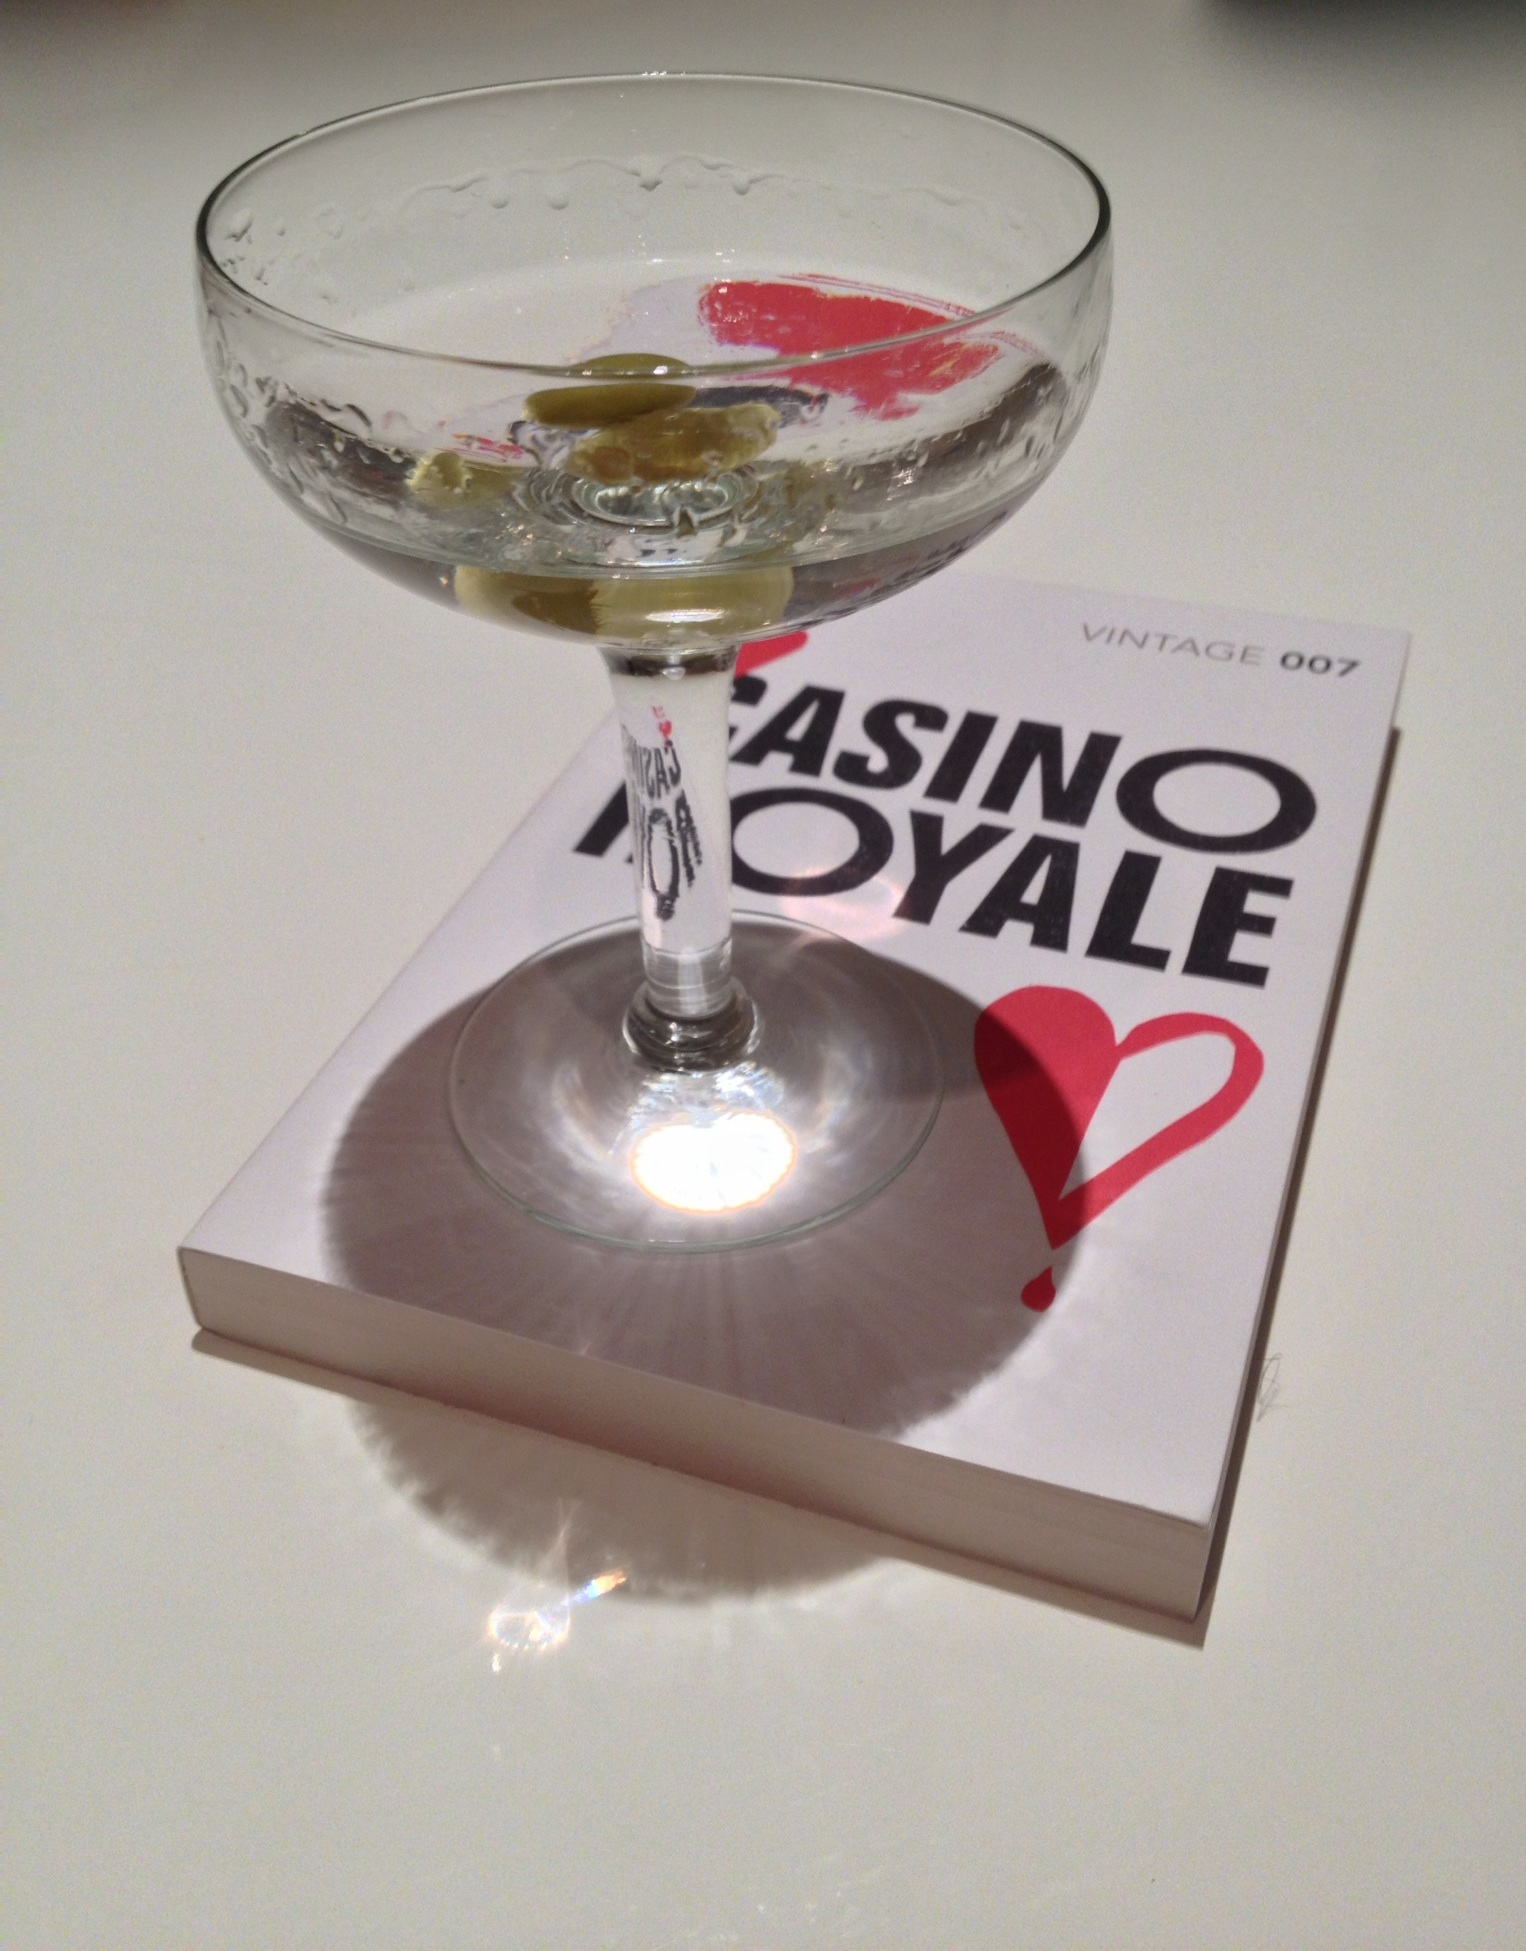 A classic bond flick is part of the recovery process.  So is a drink.  This is a Vesper Martini, cribbed from Casino Royale.  3 measures gin, 1 measure vodka, 1/2 measure Lillet Blanc.  Drink shaken. not stirred.  Obviously.